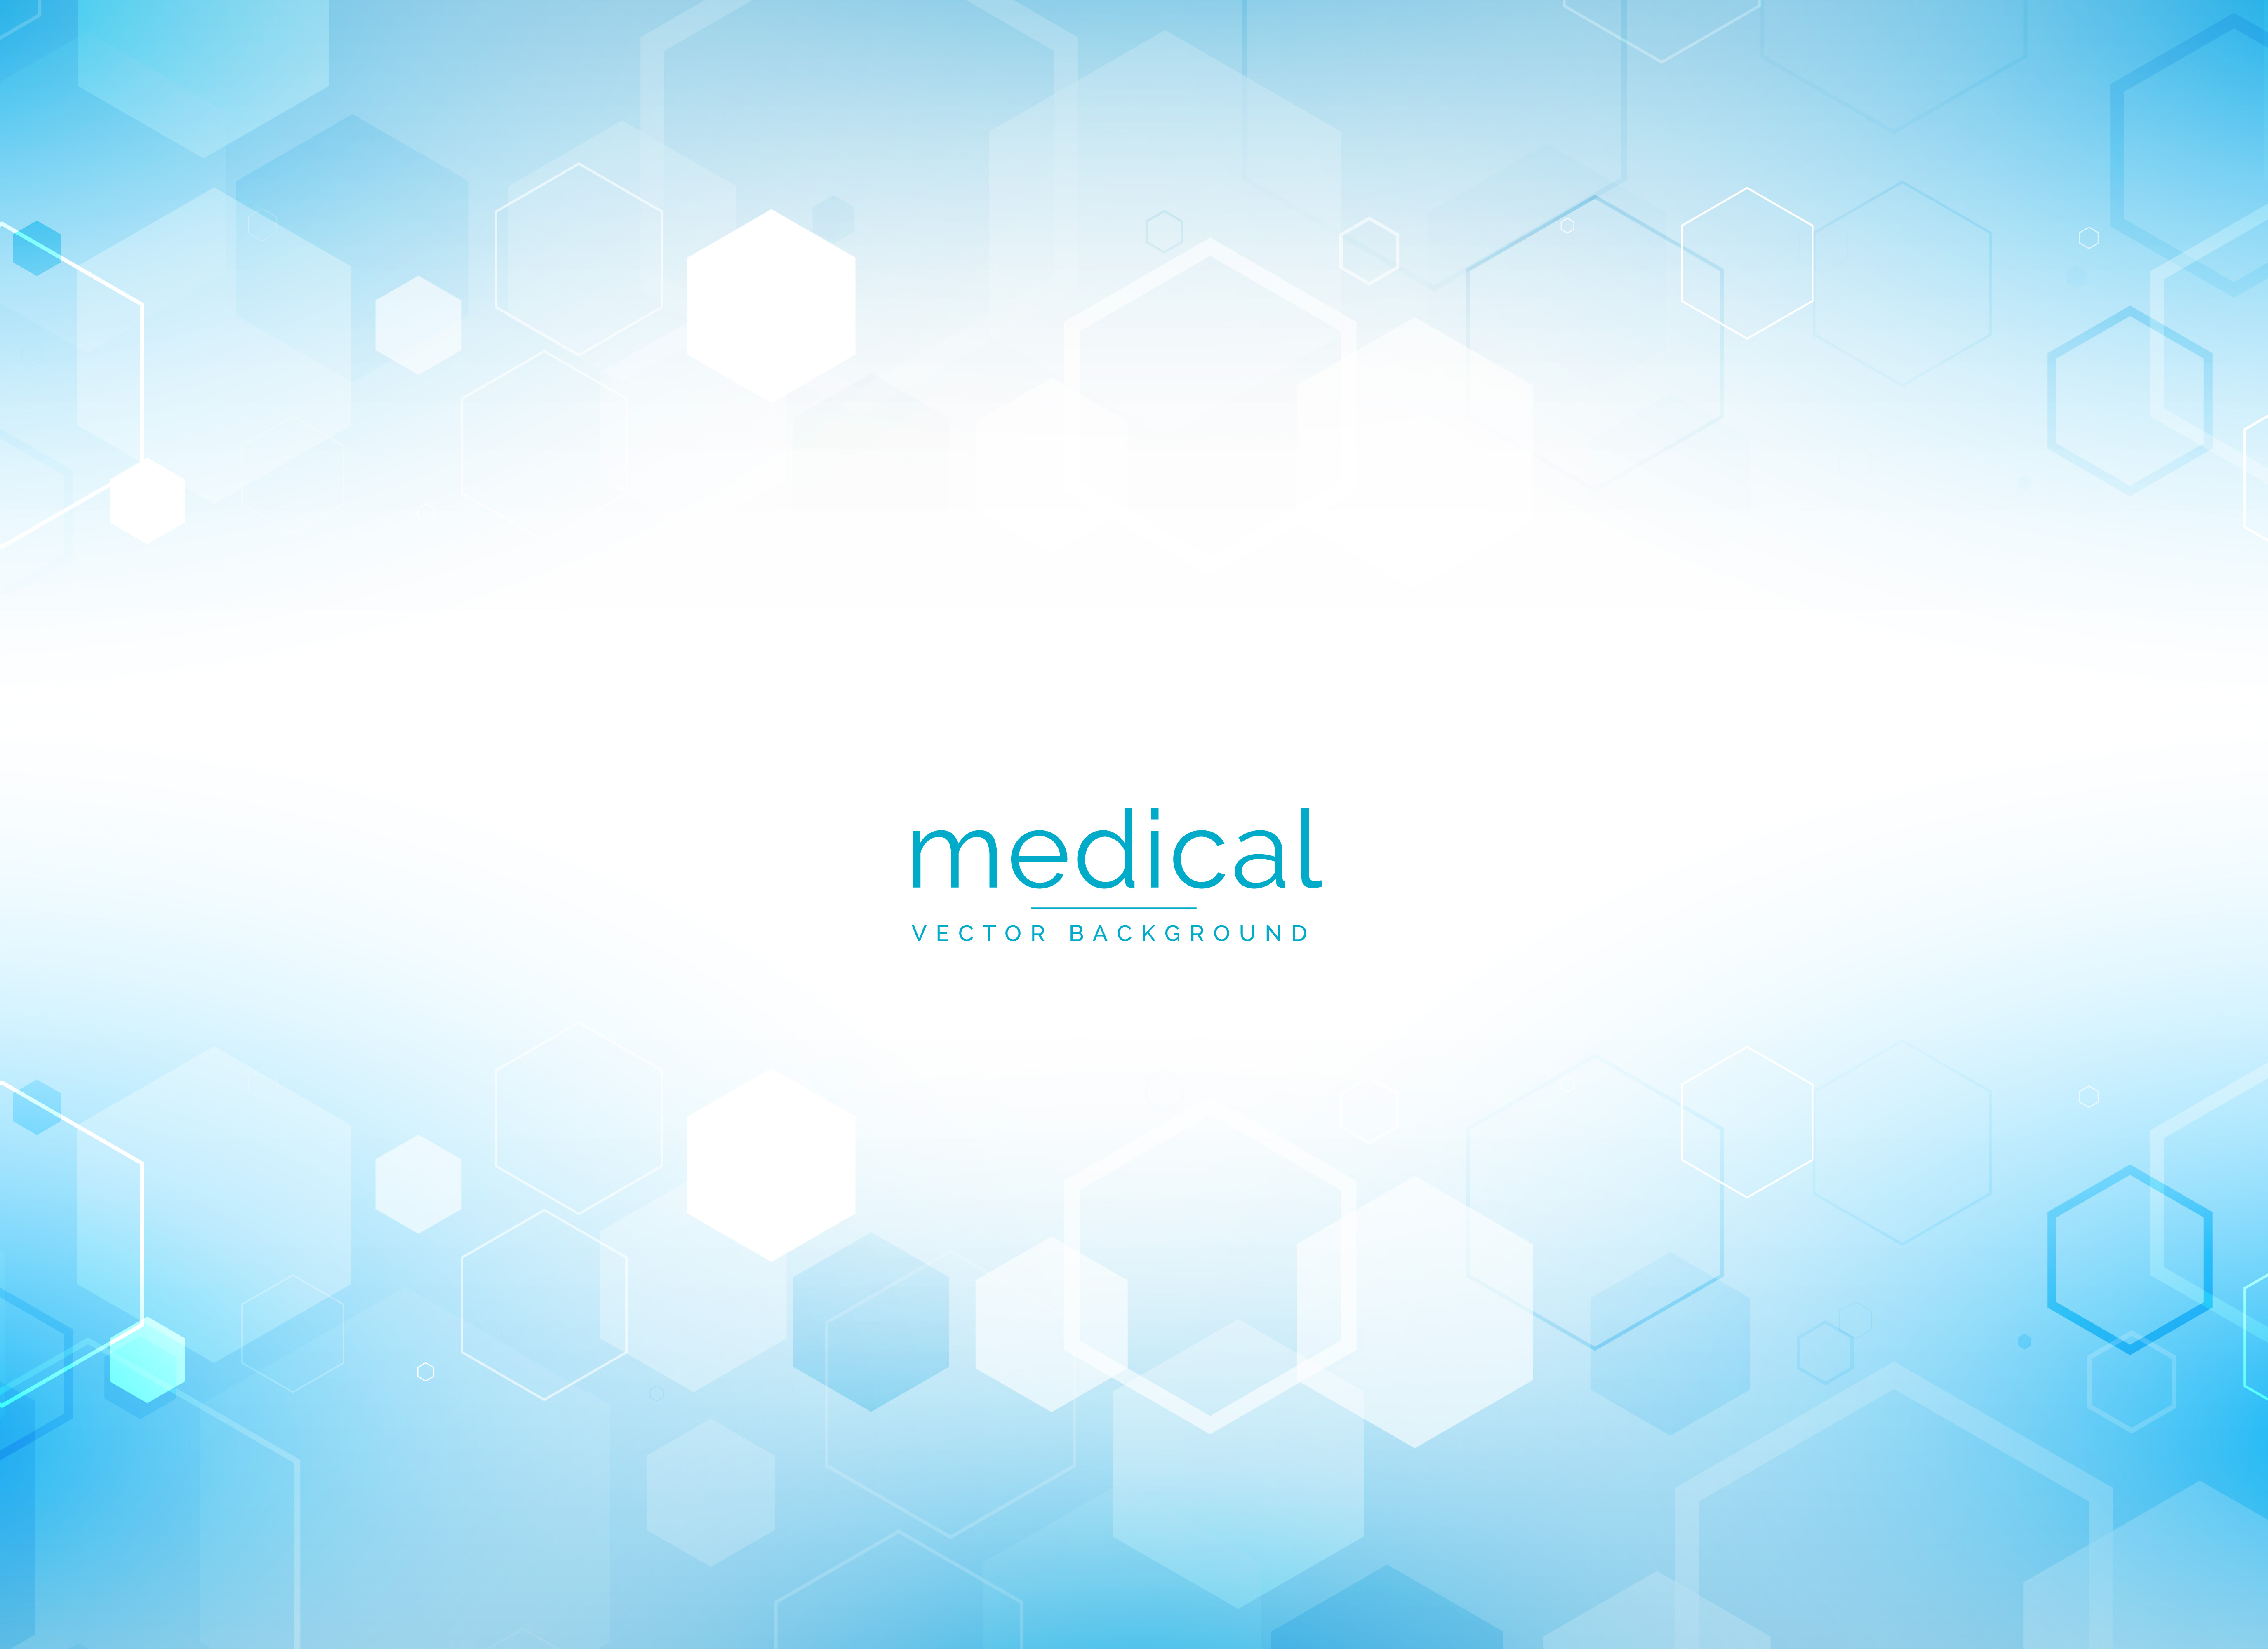 healthcare-and-medical-background-with-hexagonal-geometric-shape-vector.jpg